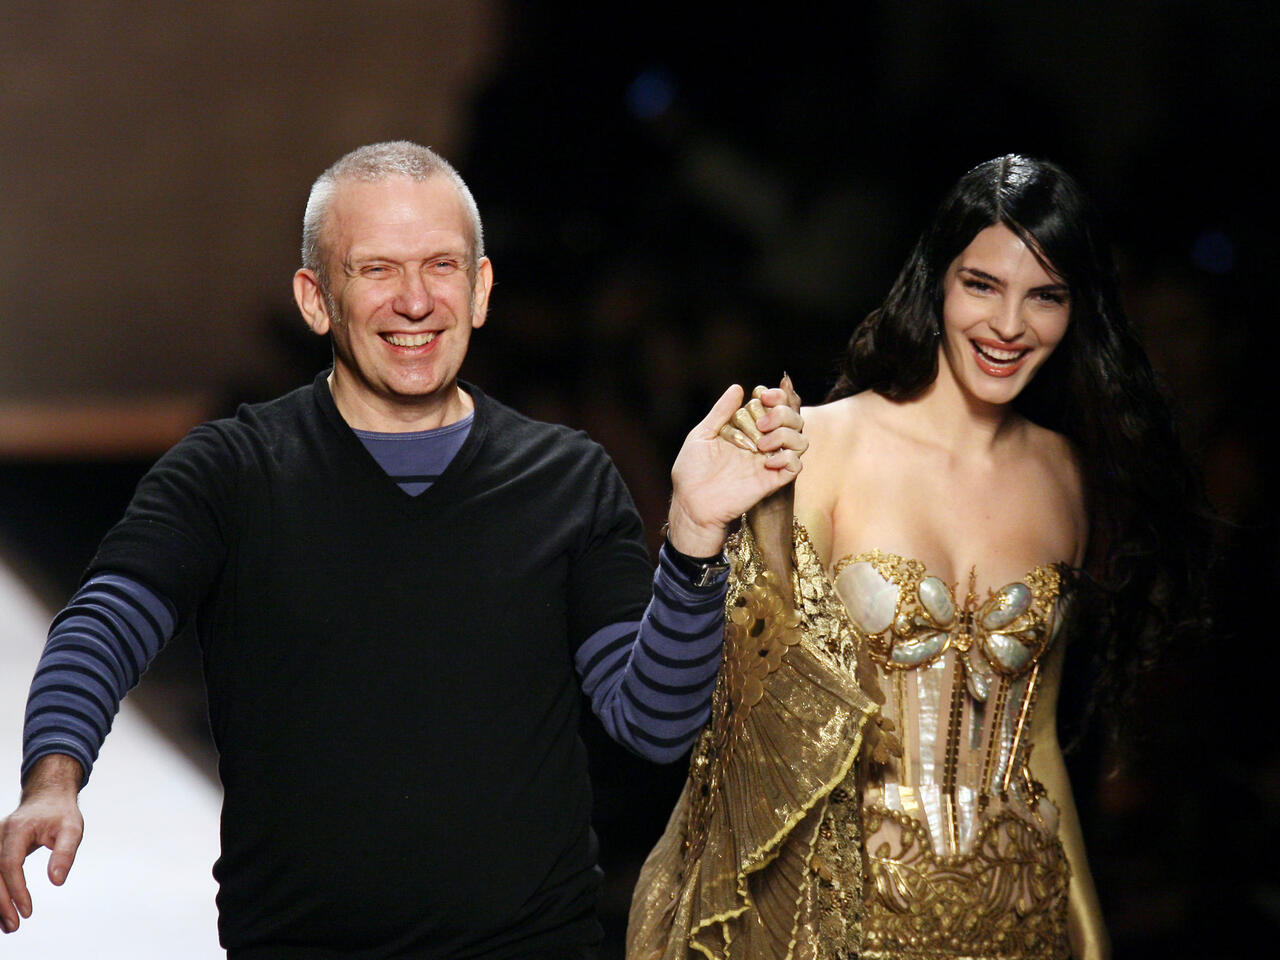 French fashion designer Jean-Paul Gaultier announces retirement